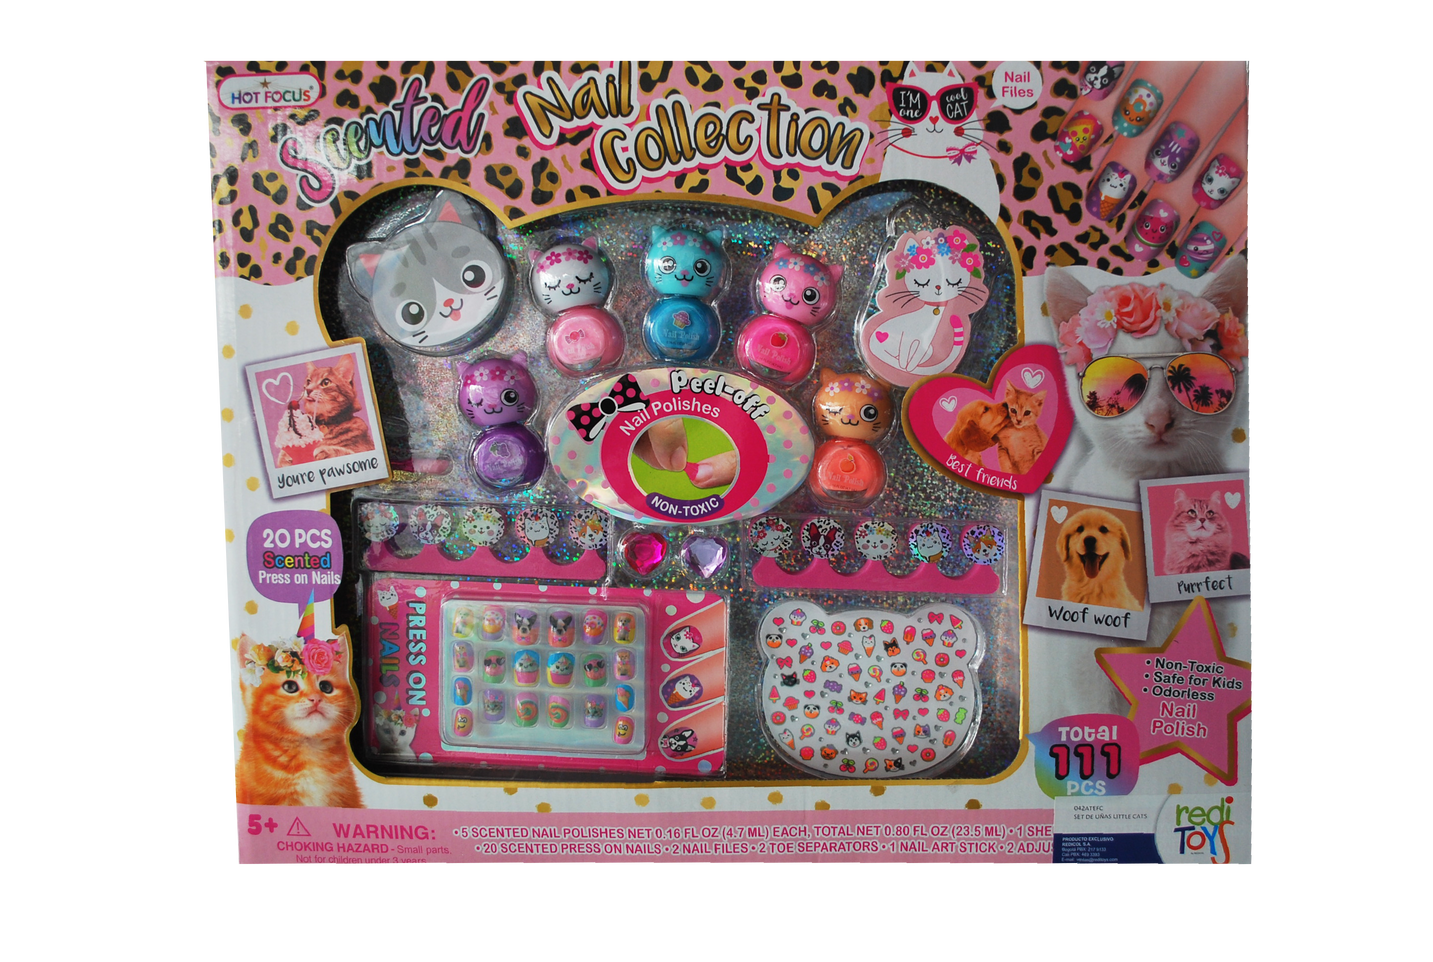 042ATEFC_-_SET_DE_UÑAS_LITTLE_CATS_1.pn